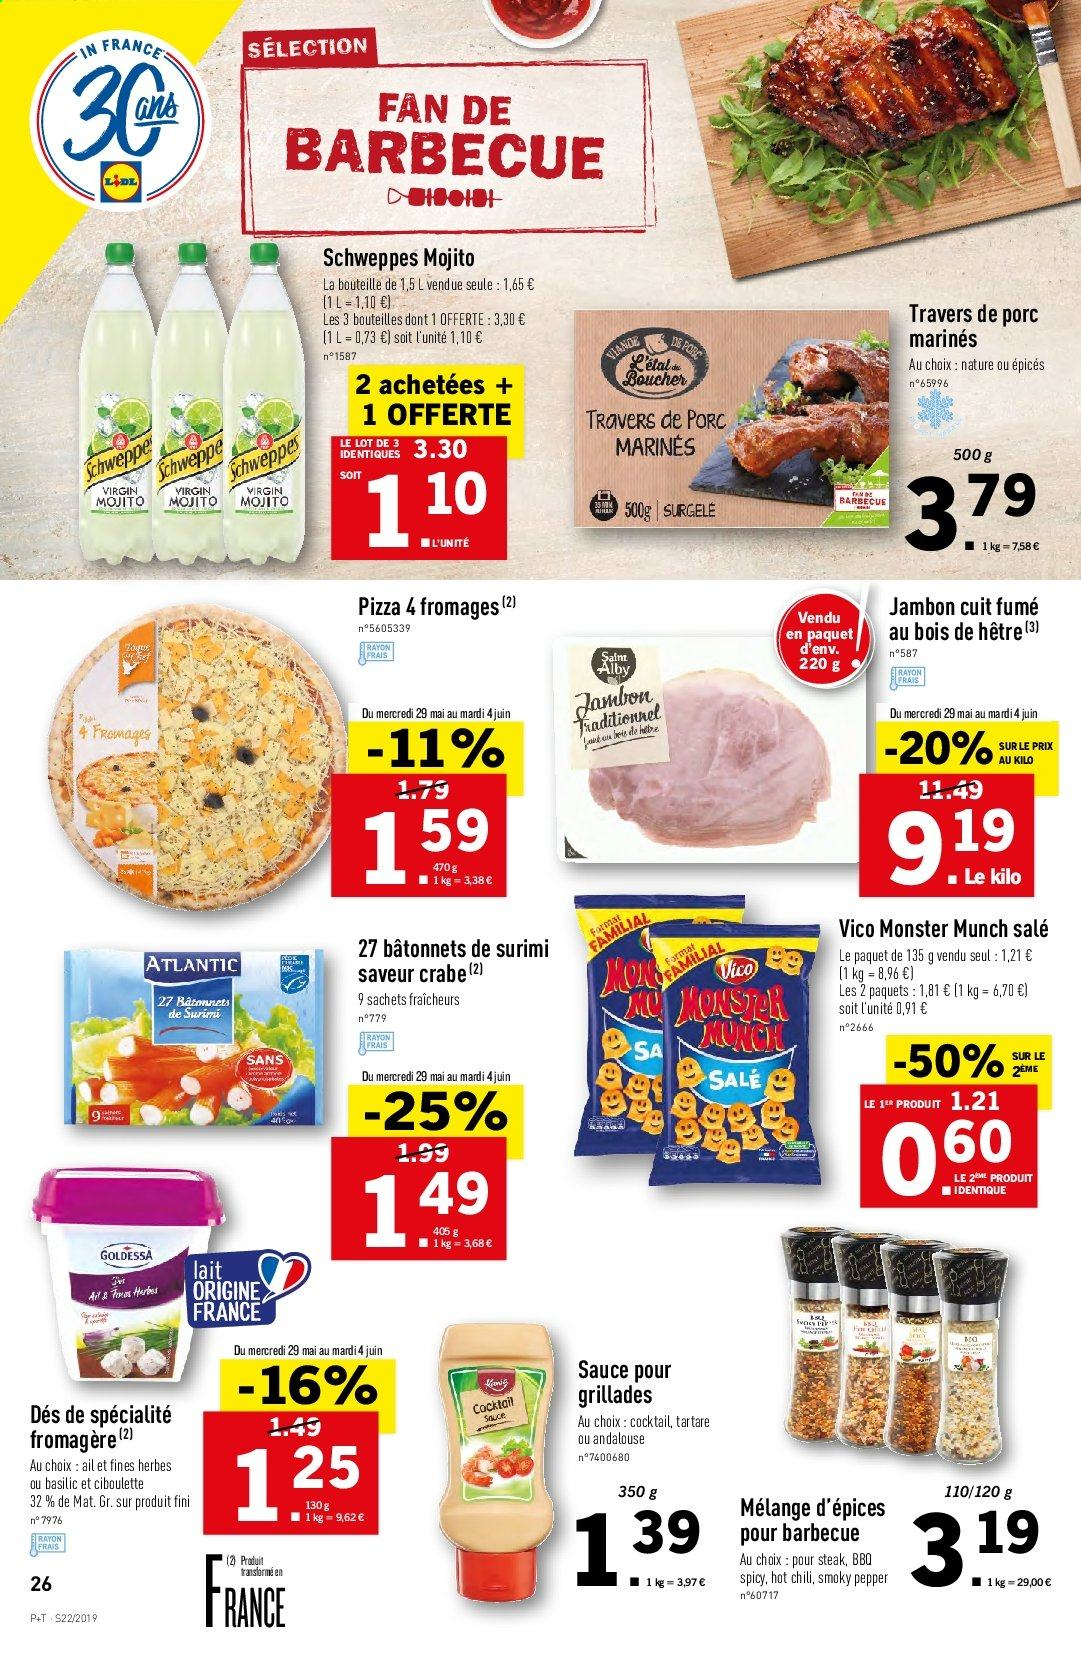 Catalogue Lidl - 29.05.2019 - 04.06.2019. Page 26.